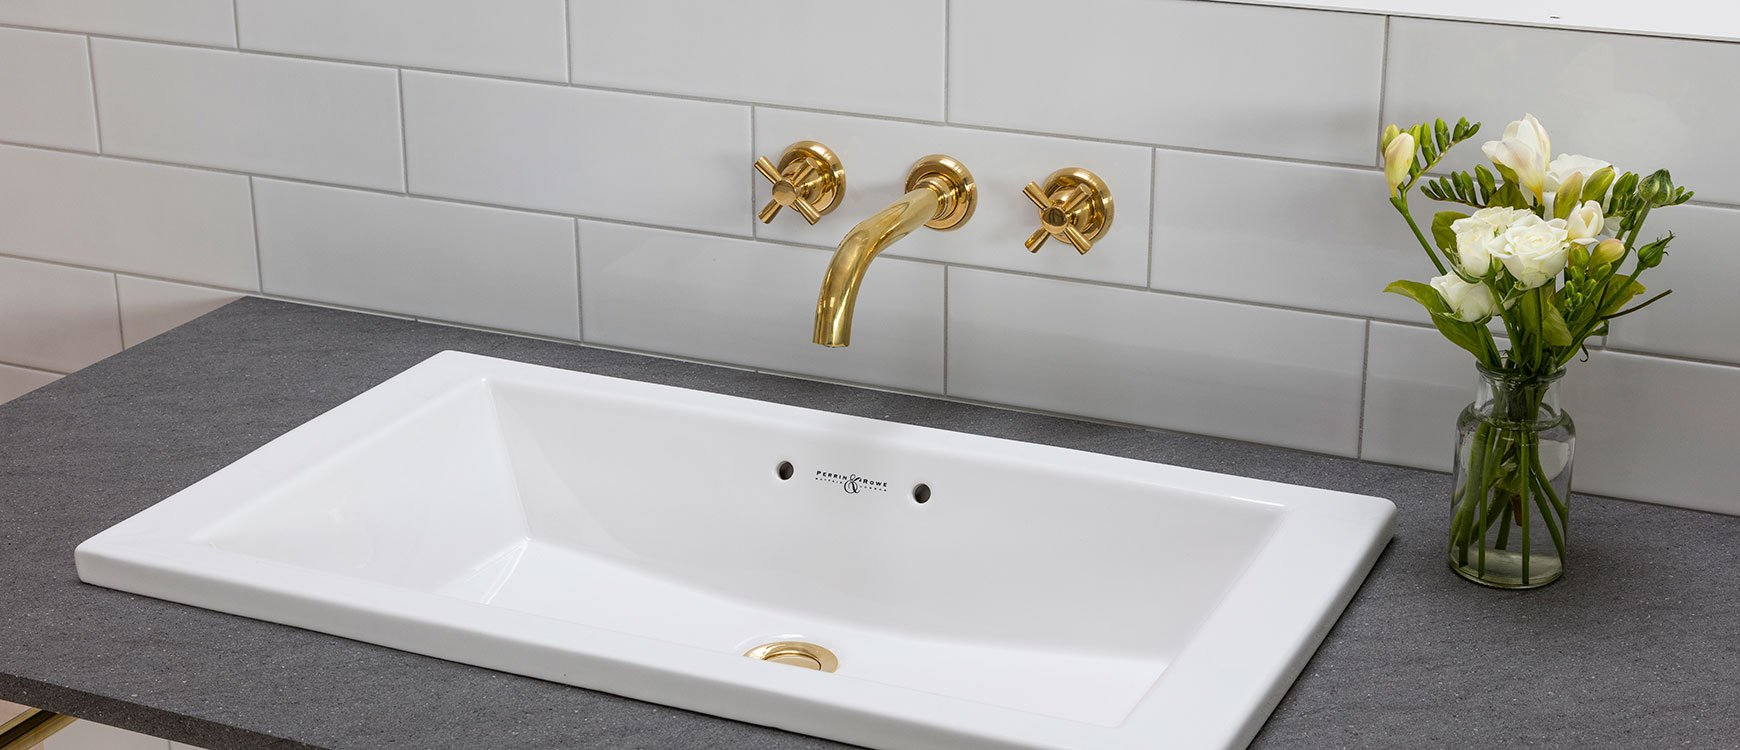 rowe mayfair ionian perrin size phoenician repair replacement parts valve shocking pewter faucet stockists and large filter faucets of kitchen rohl cartridge